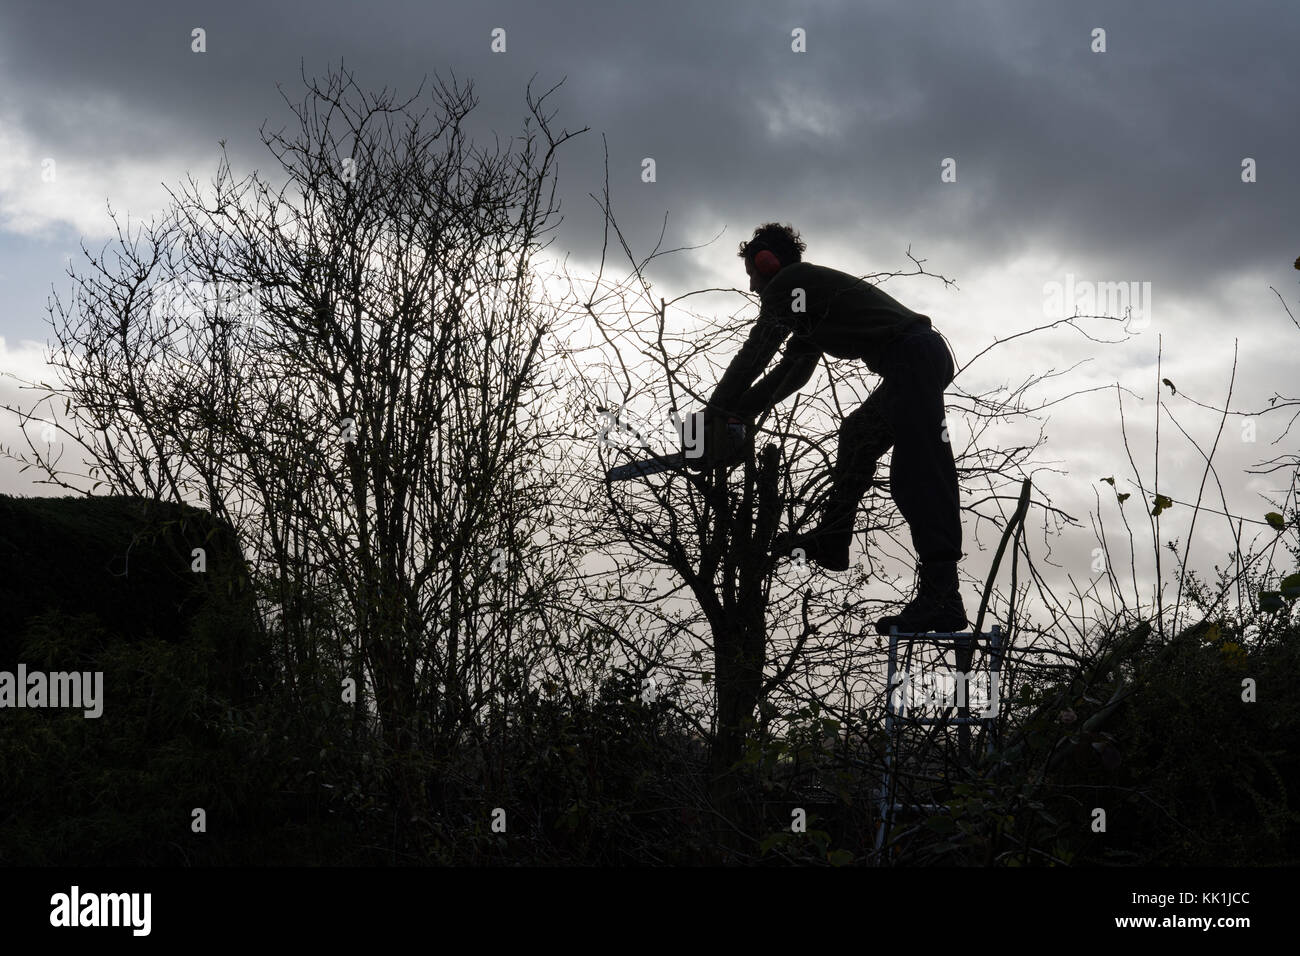 Hedge trimming at the start of winter - Stock Image